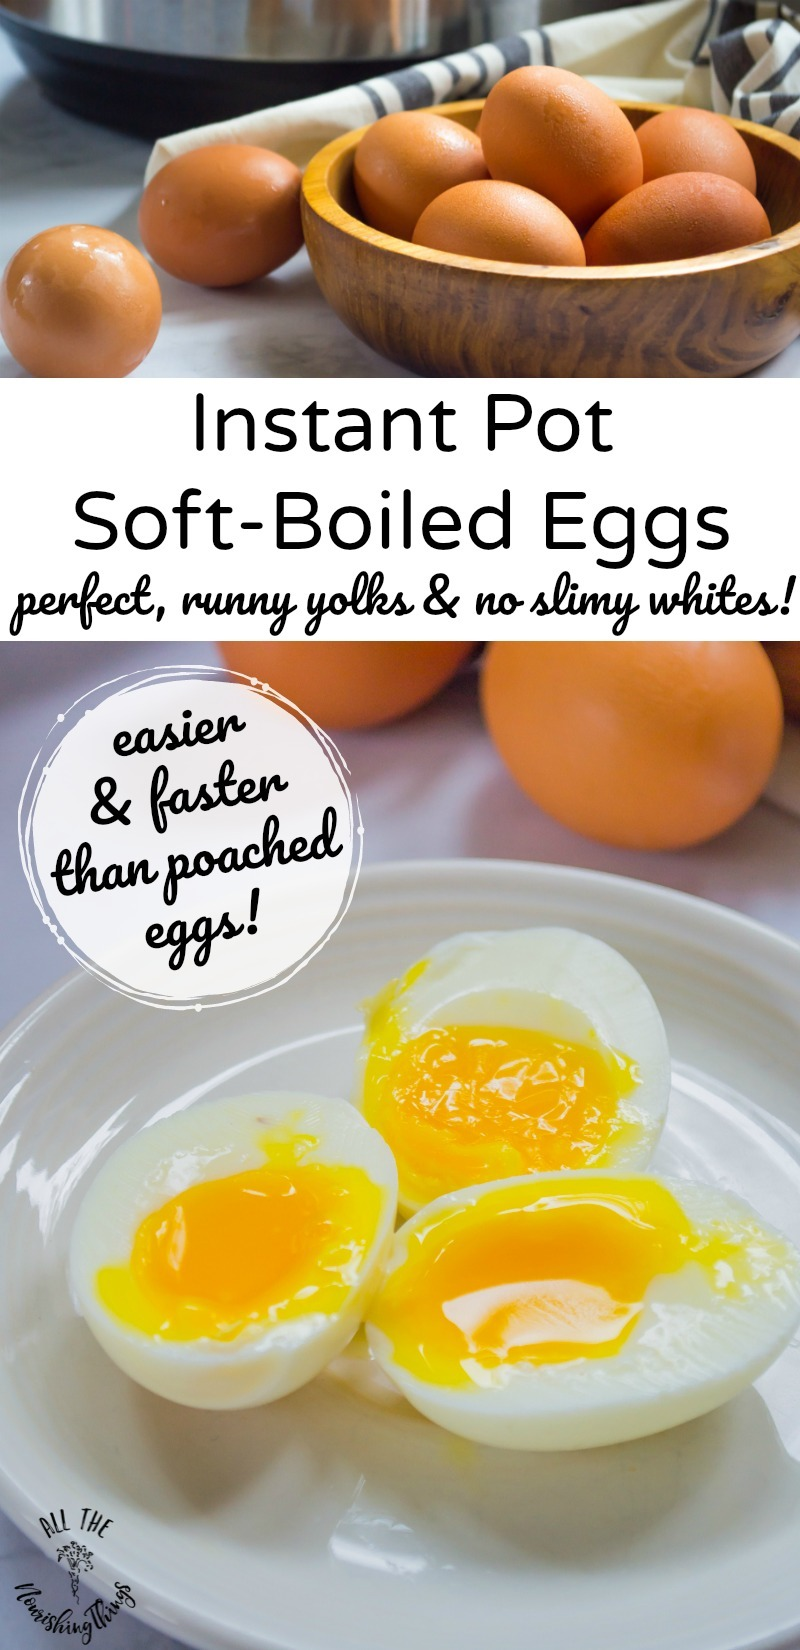 instant pot soft boiled eggs with text overlay